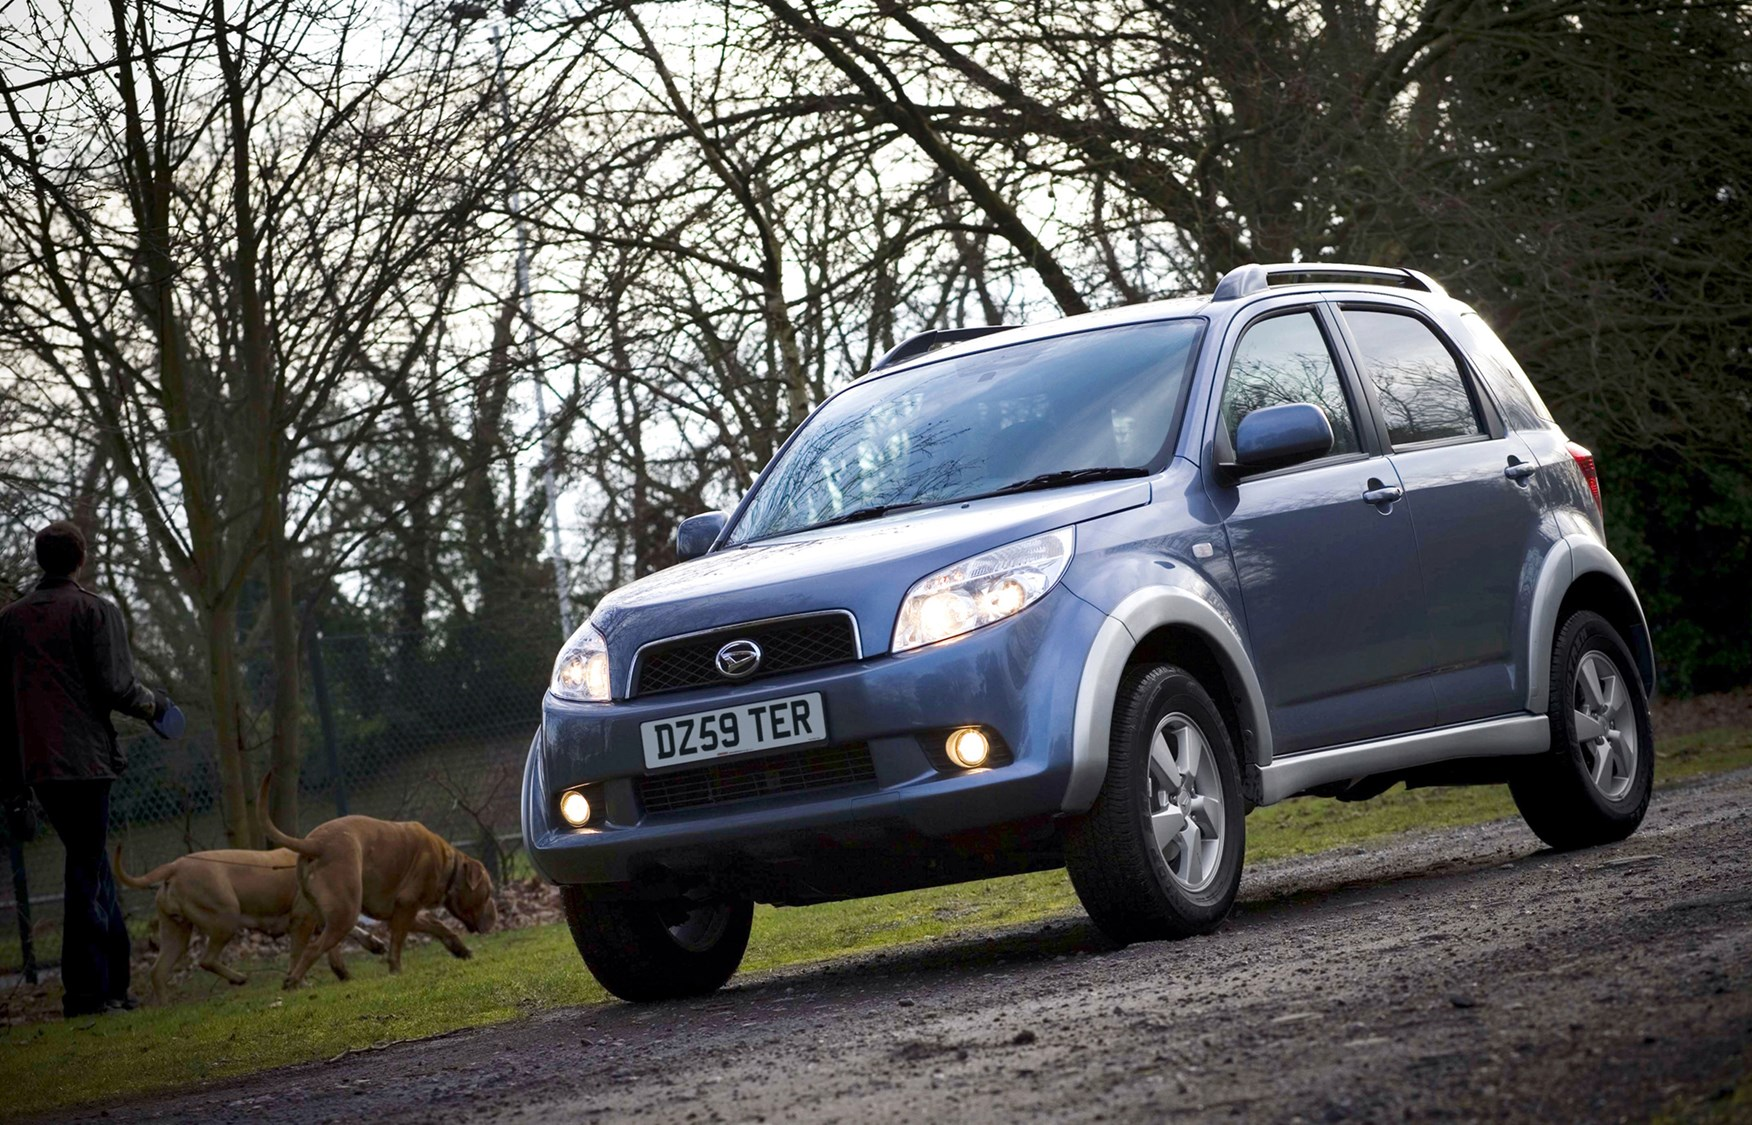 View all images of the daihatsu terios 06 10